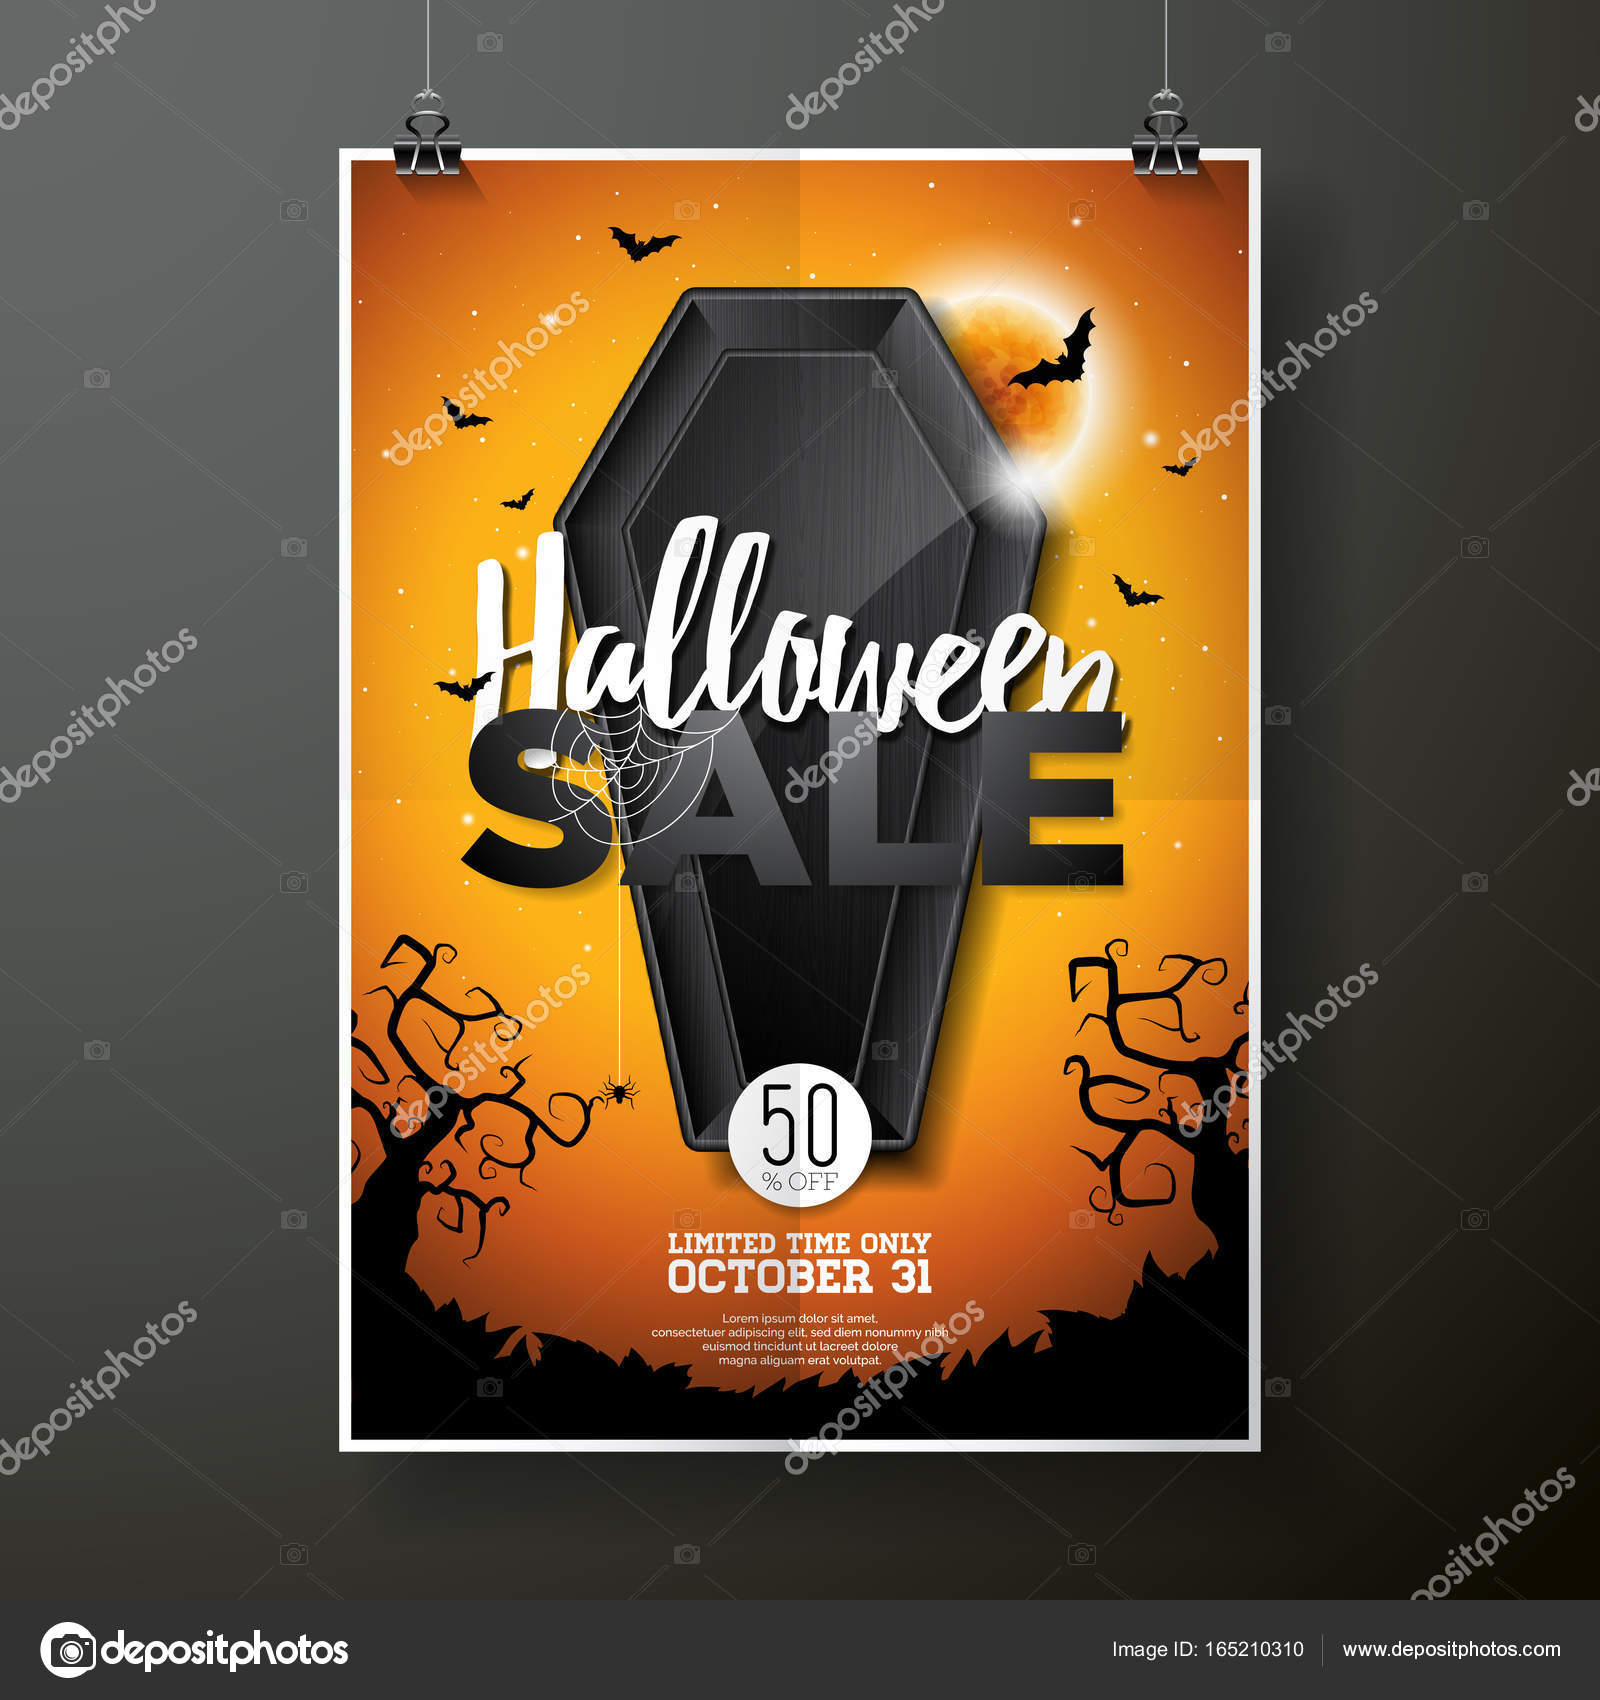 halloween sale vector illustration with coffin and holiday elements on orange background design for offer